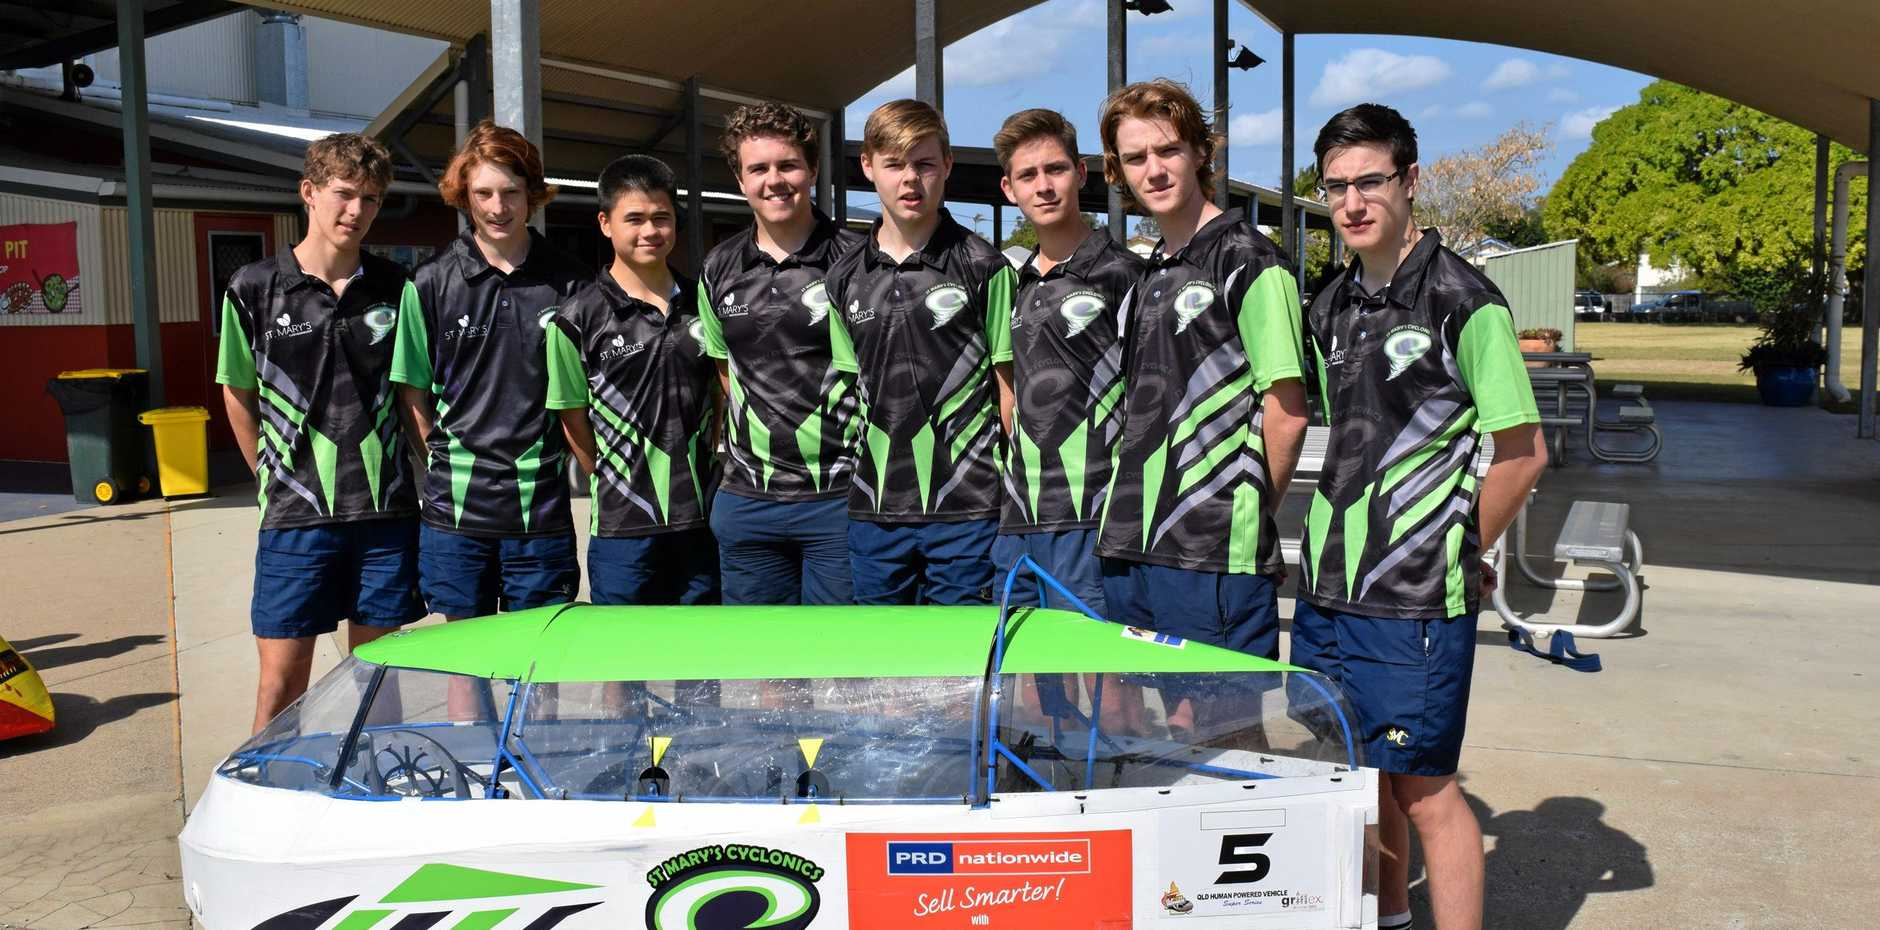 READY TO ROLL: St Mary's Cyclonics senior boys team are excited to attend this weekend's Fraser Coast Technology Challenge.